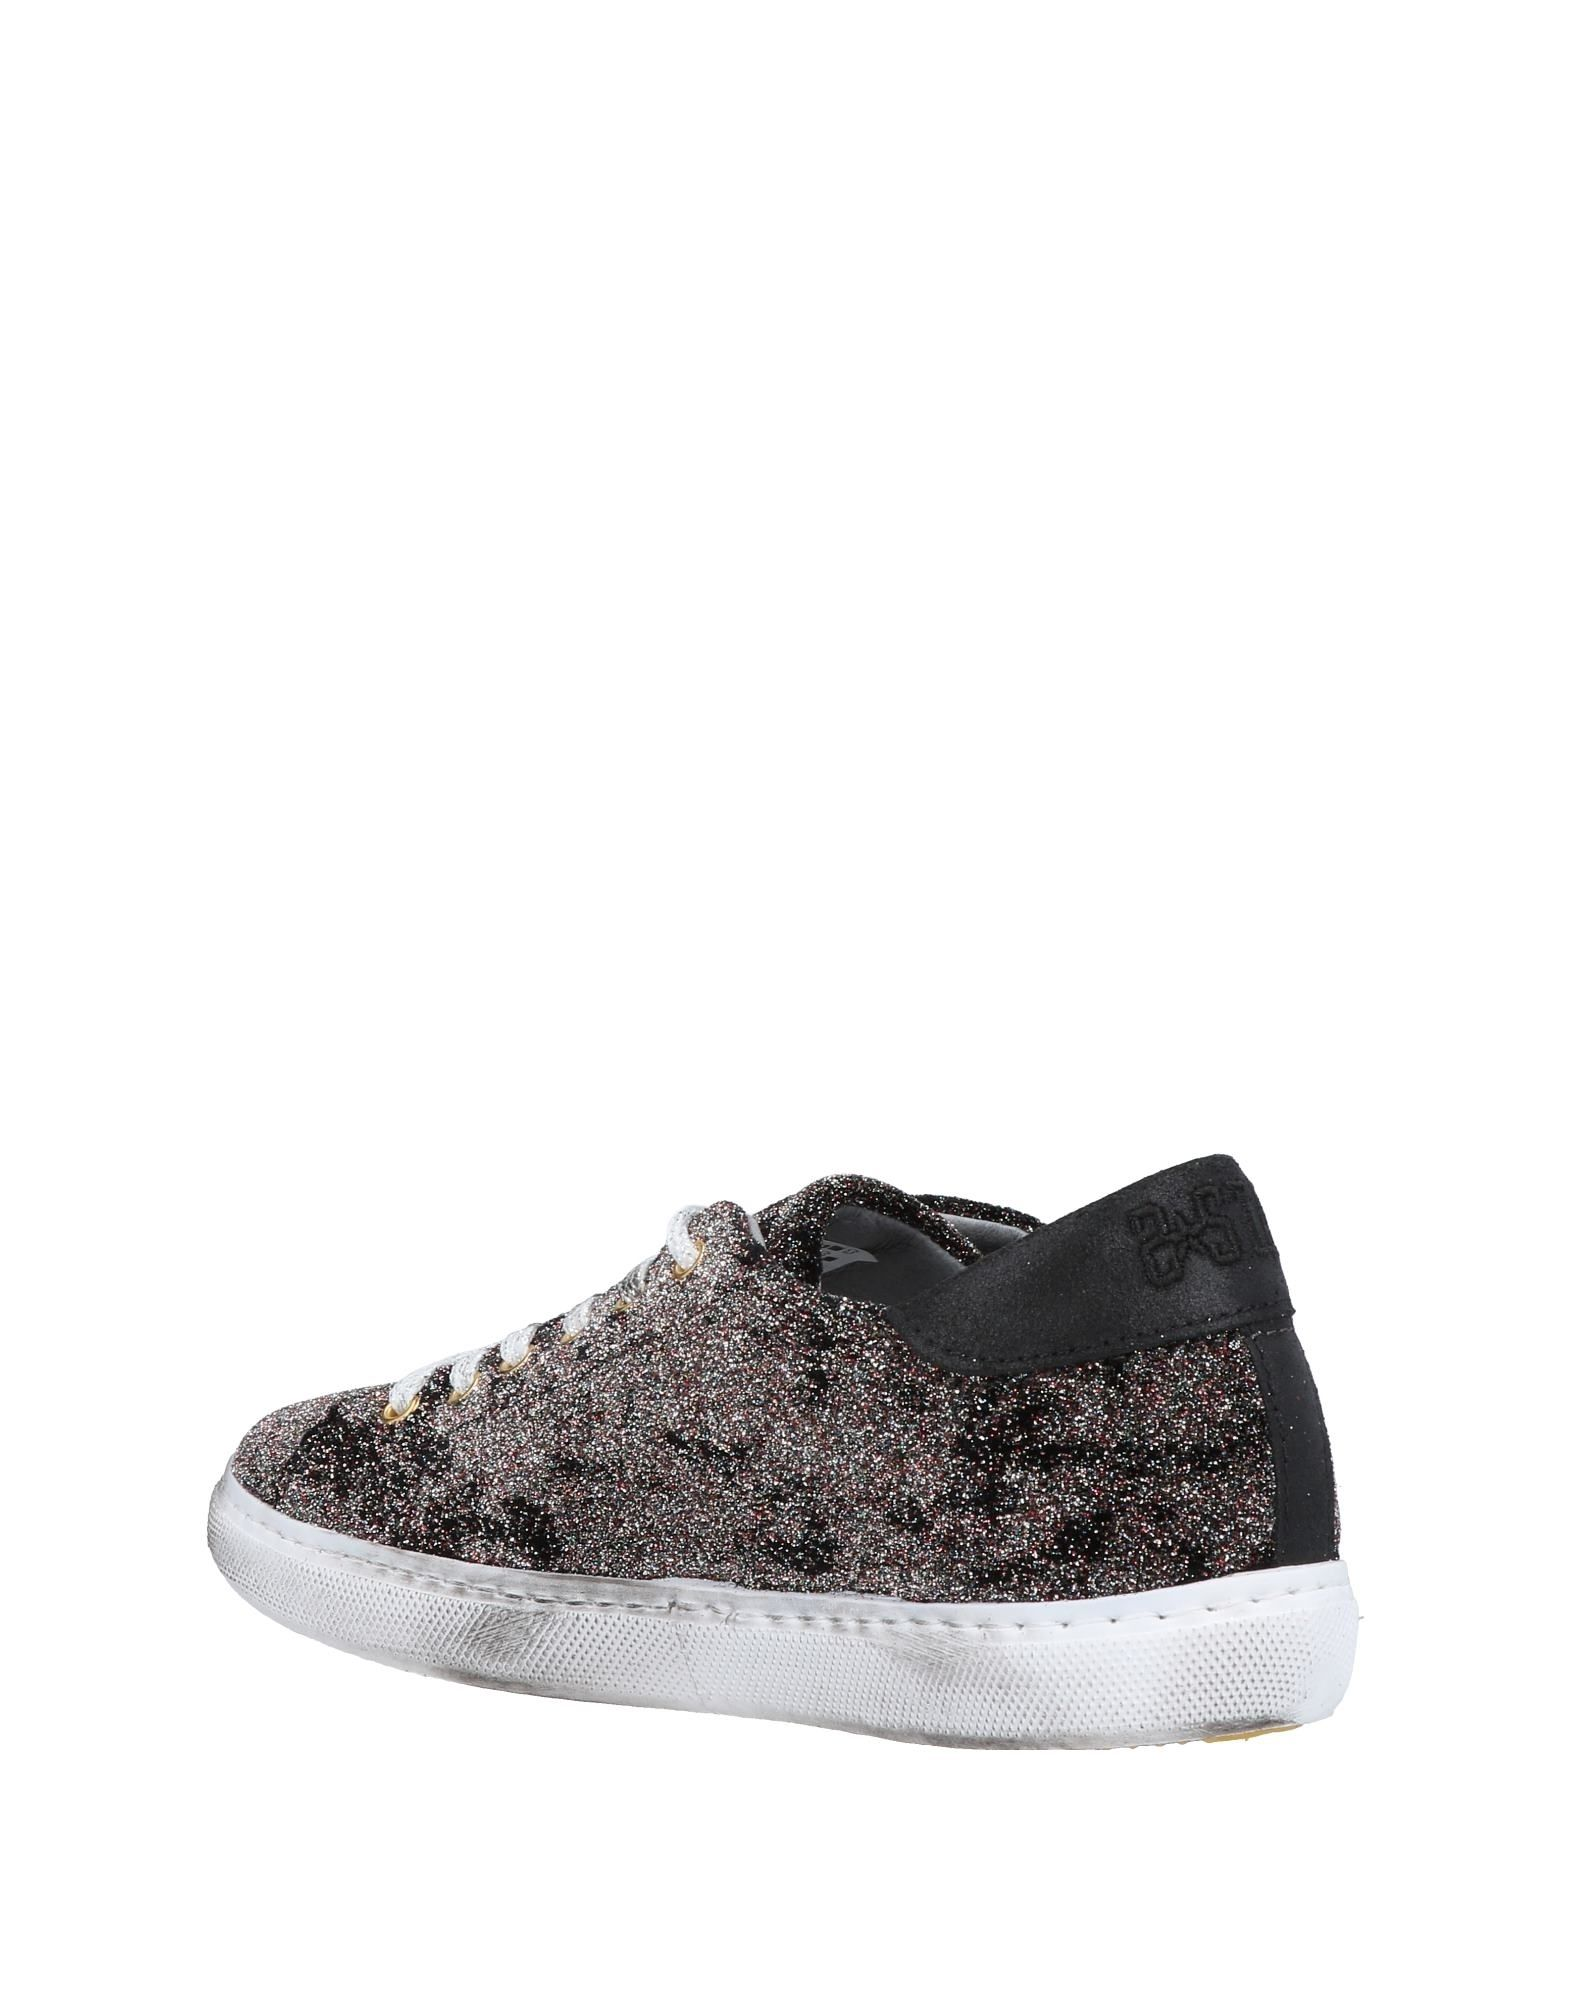 Sneakers 2Star Femme - Sneakers 2Star sur